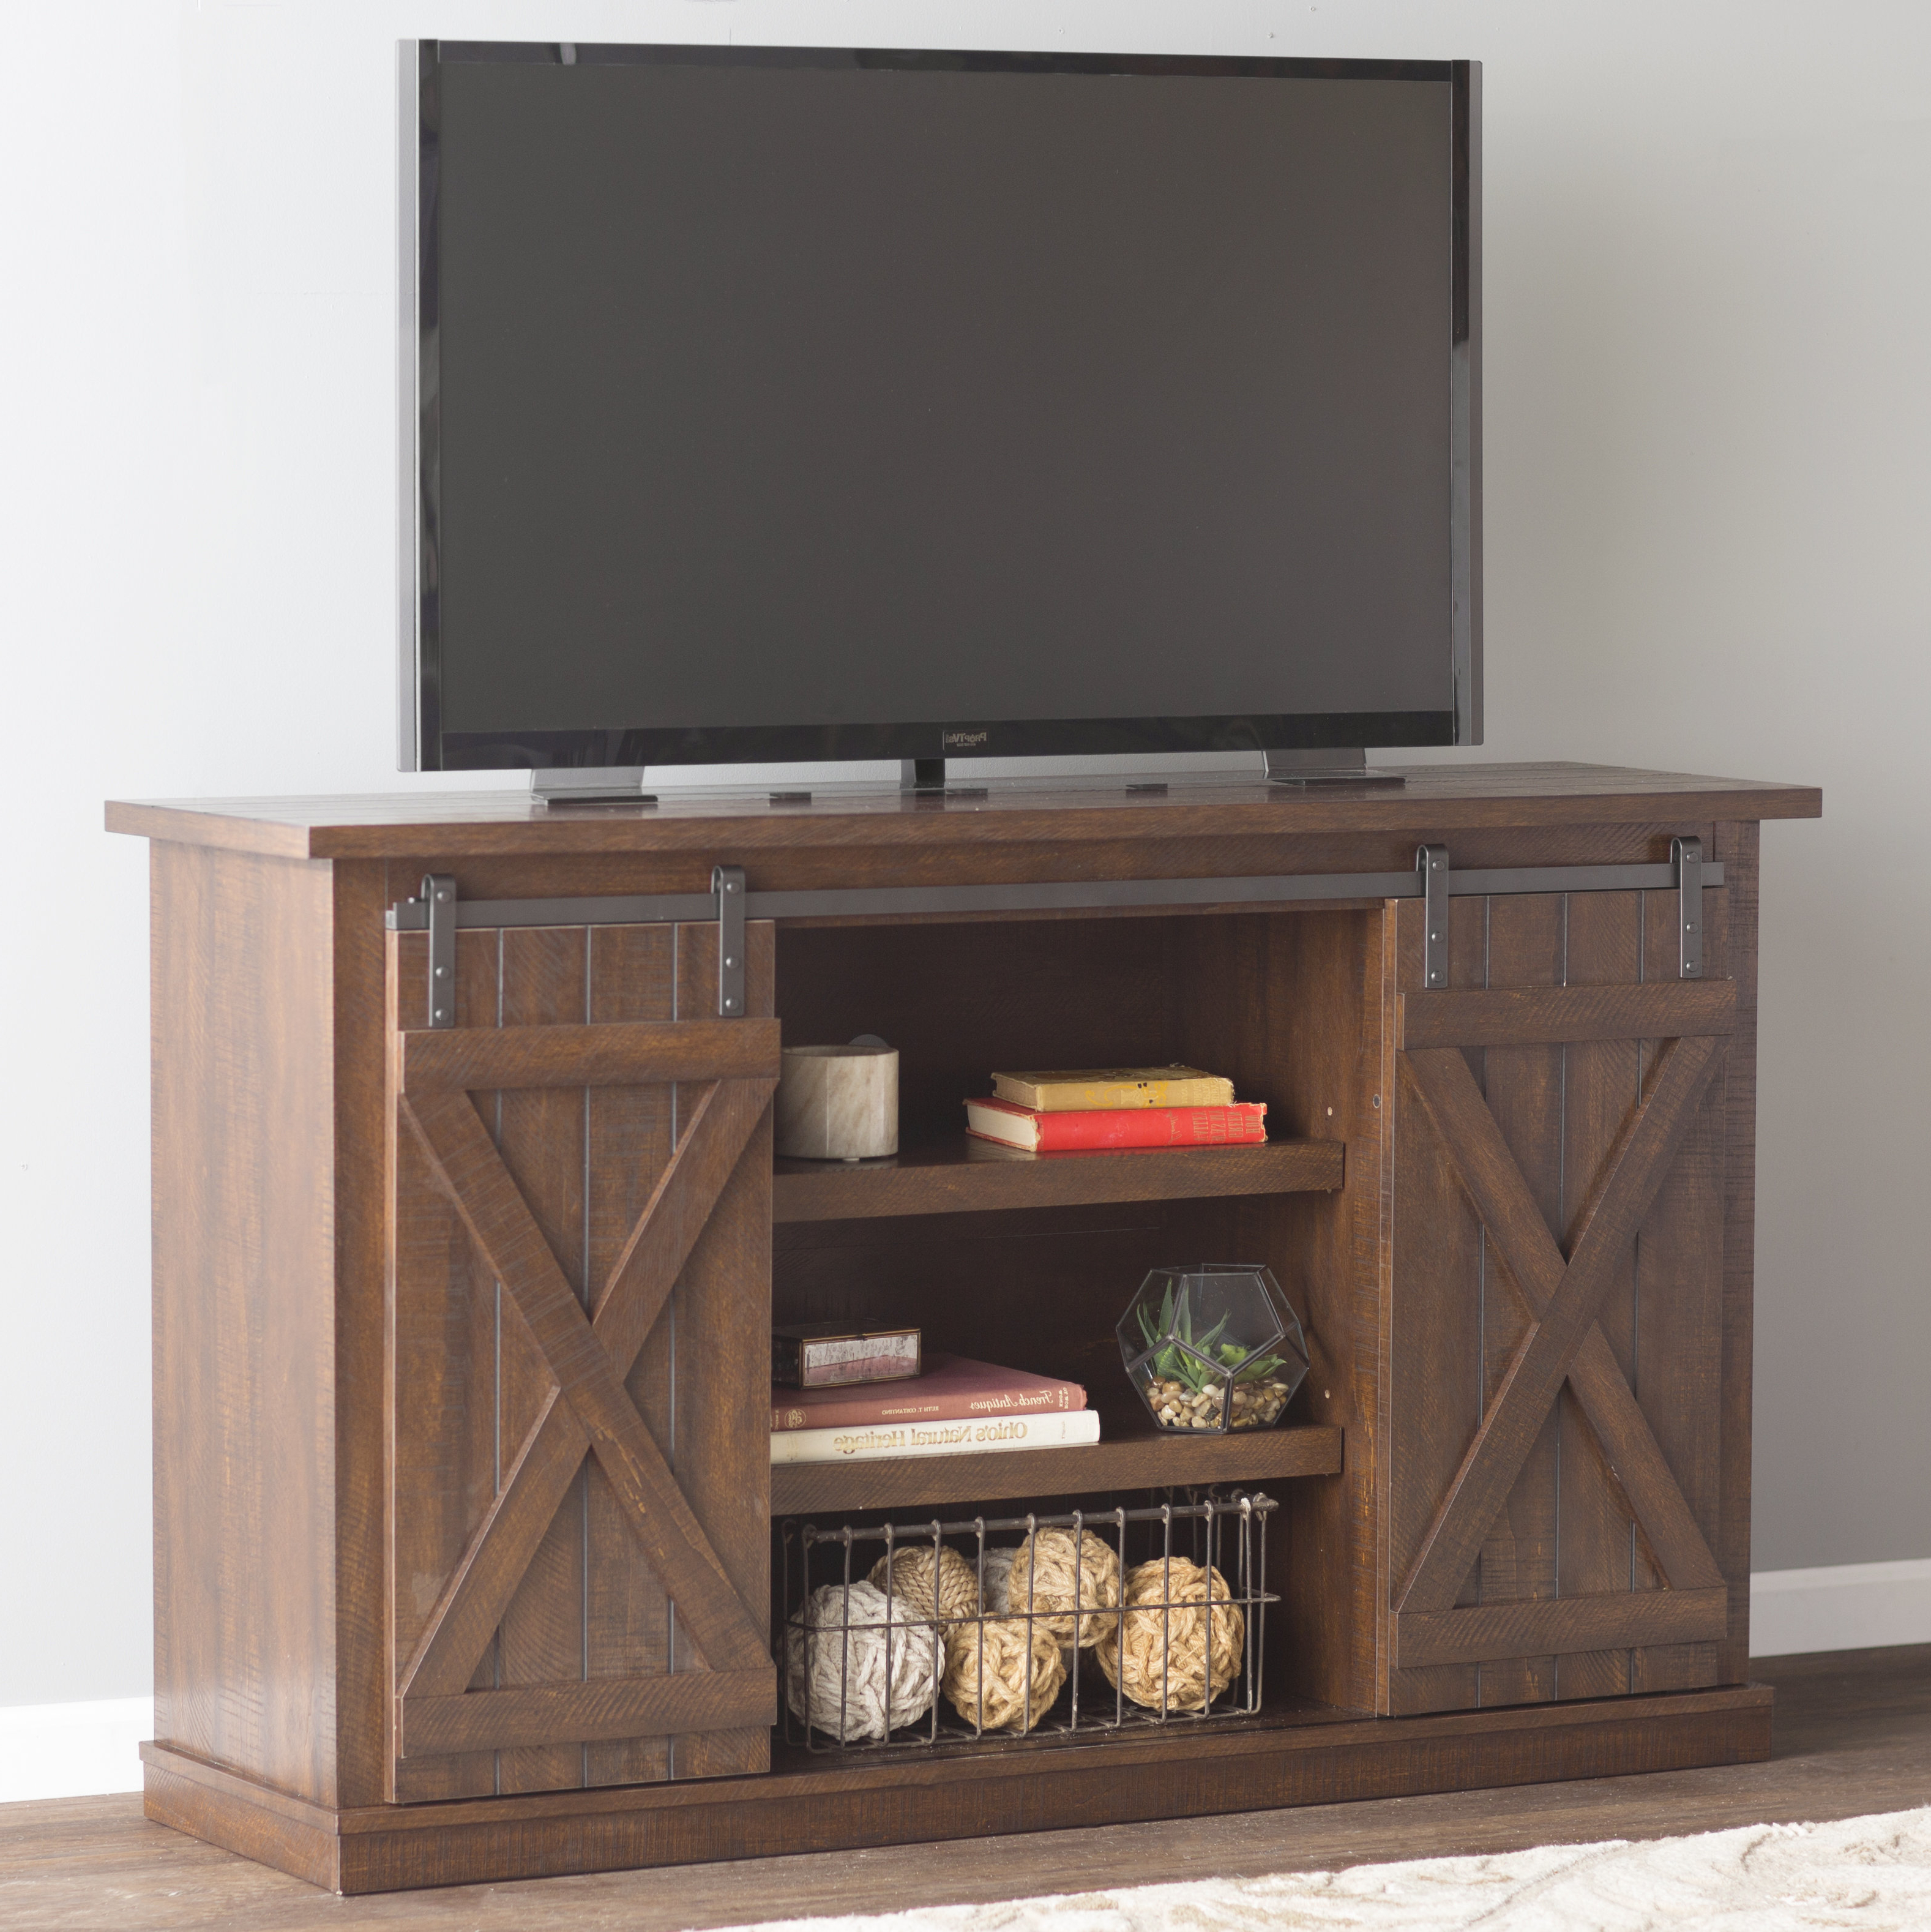 72 Inch Tv Stand | Wayfair Regarding Century Blue 60 Inch Tv Stands (View 1 of 20)